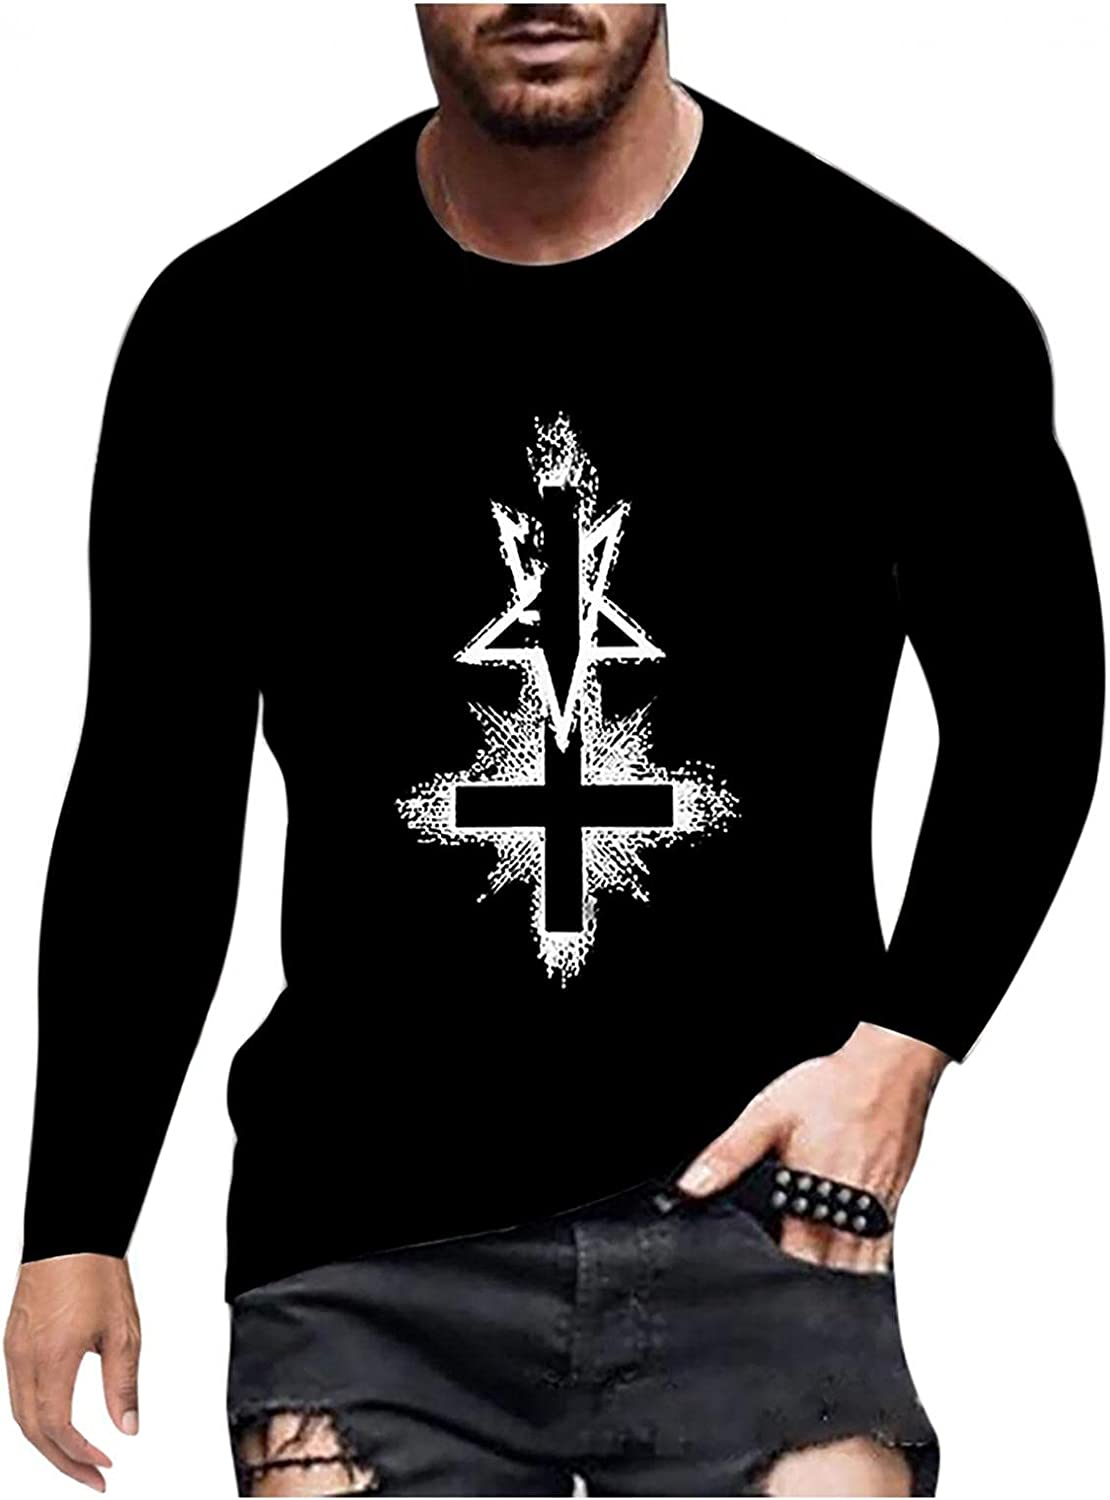 Long Sleeve Tee Shirts for Men Fashion Graphic Men's T Shirts Round Neck Athletic Sweatshirt Casual Sport Pullover